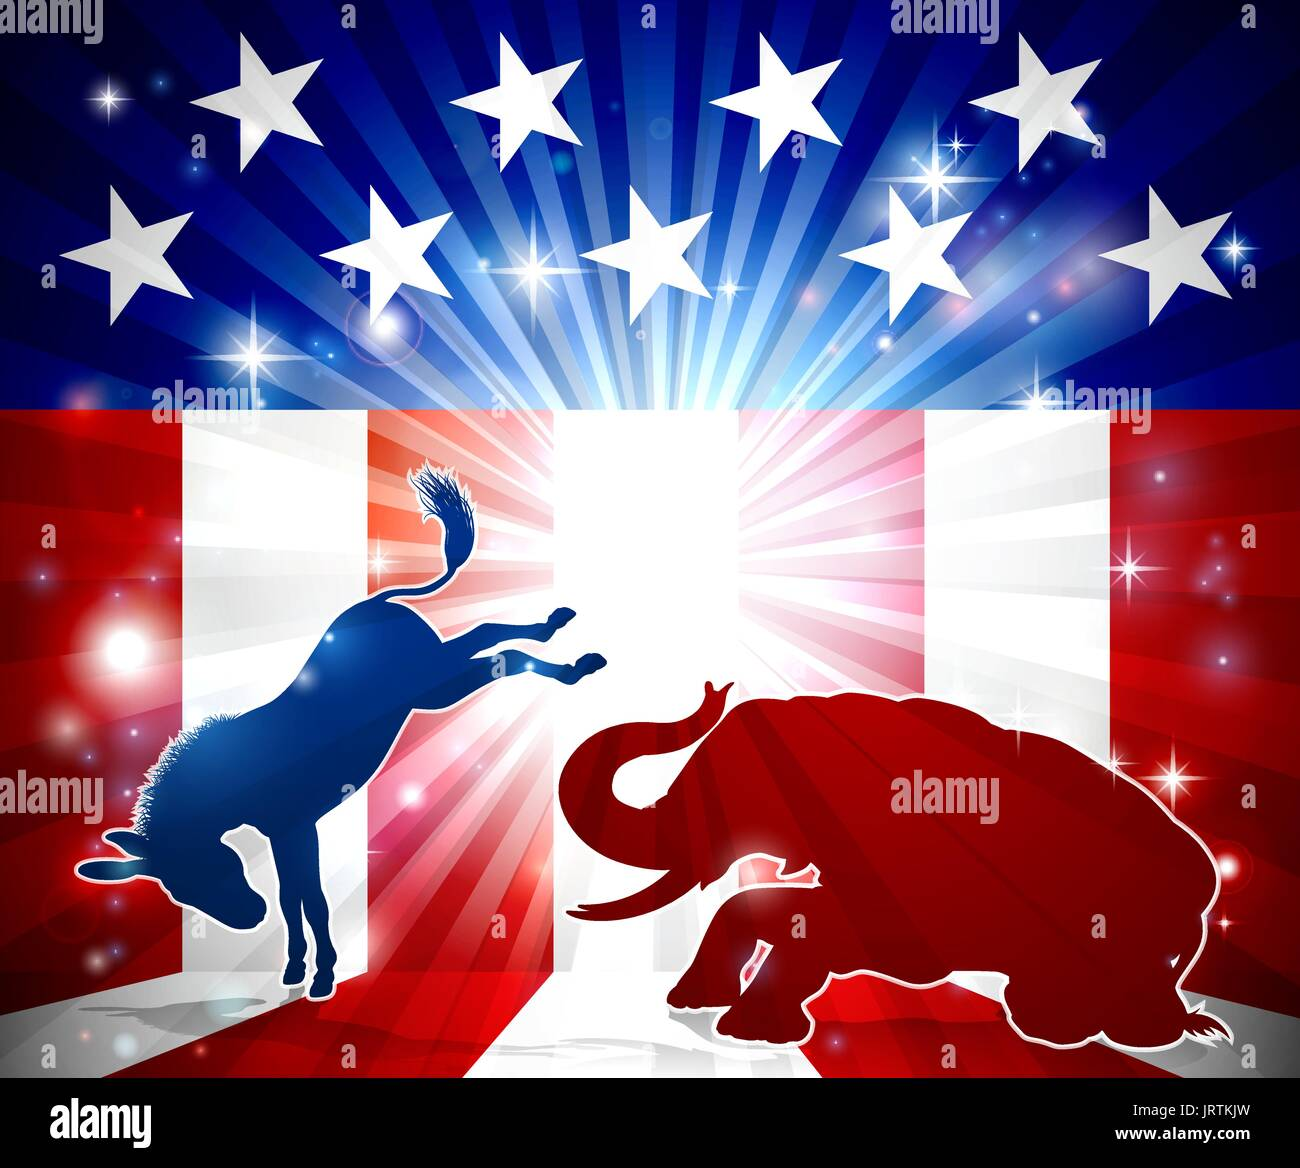 Silhouette Donkey Fighting Elephant  - Stock Image